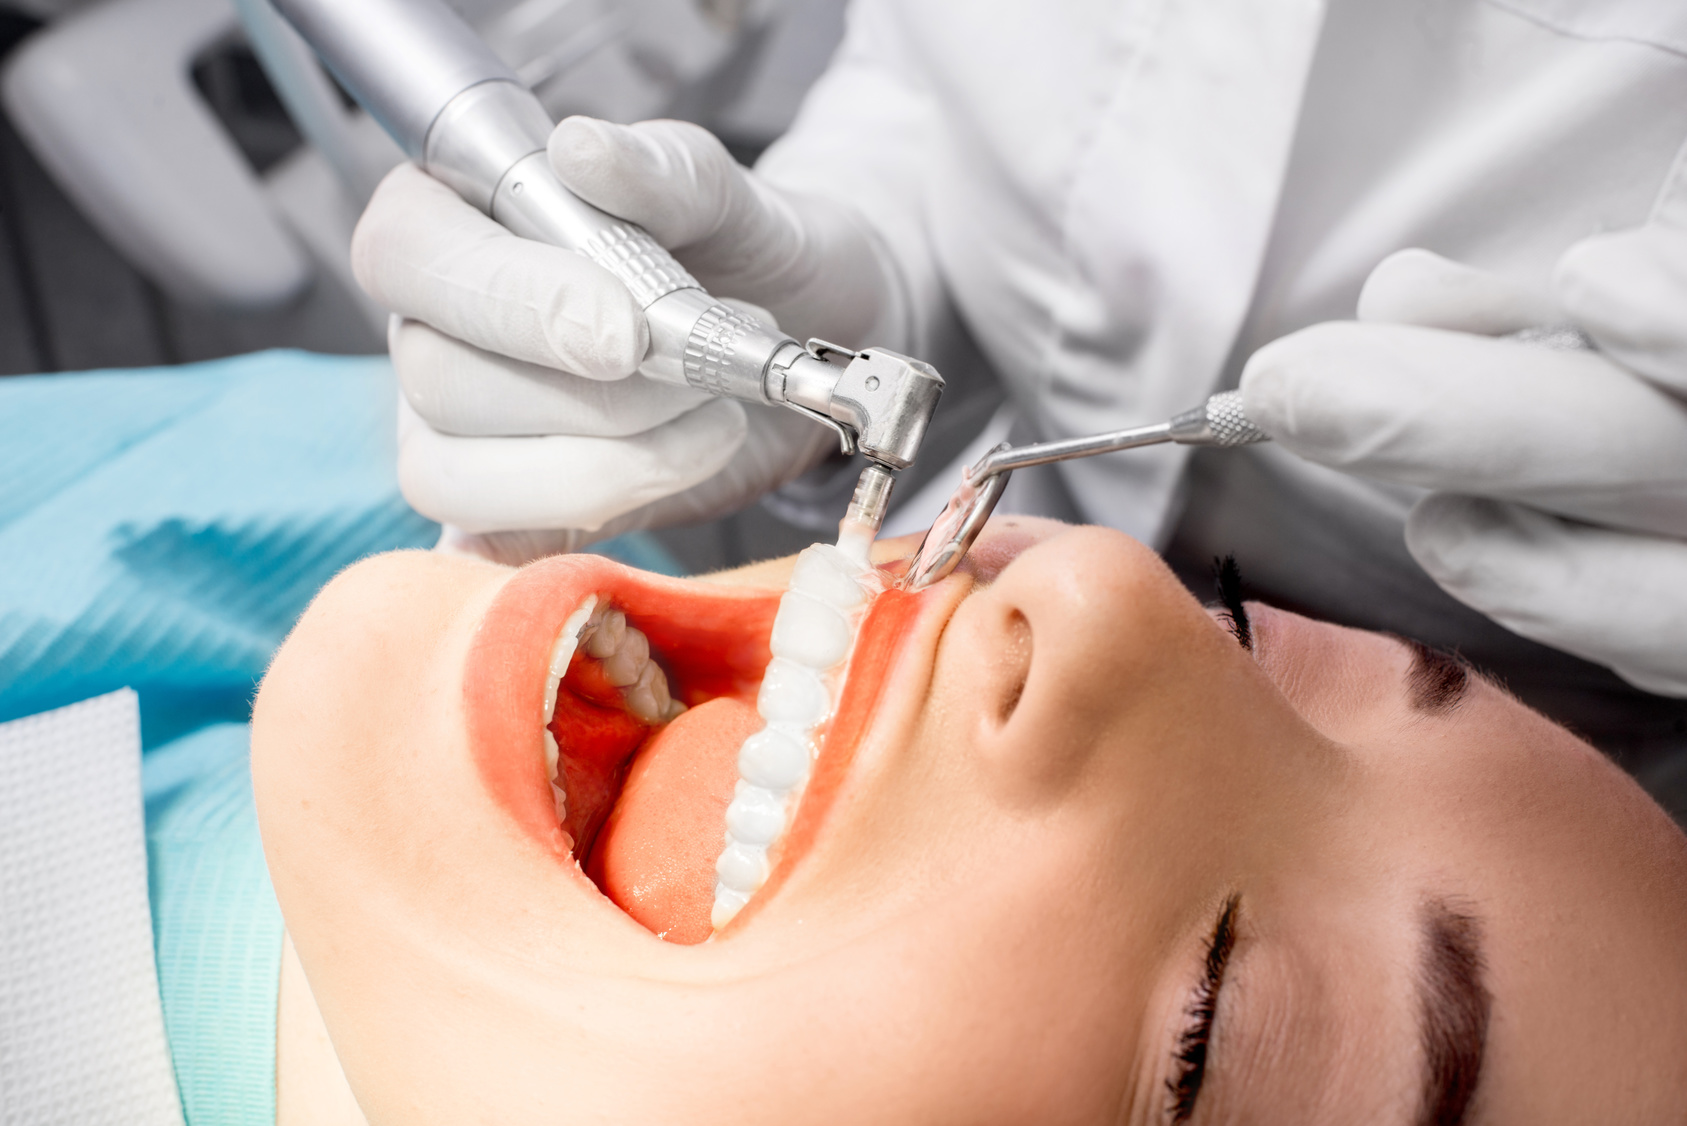 Dentist making professional teeth cleaning female young patient at the dental office. Close-up plan